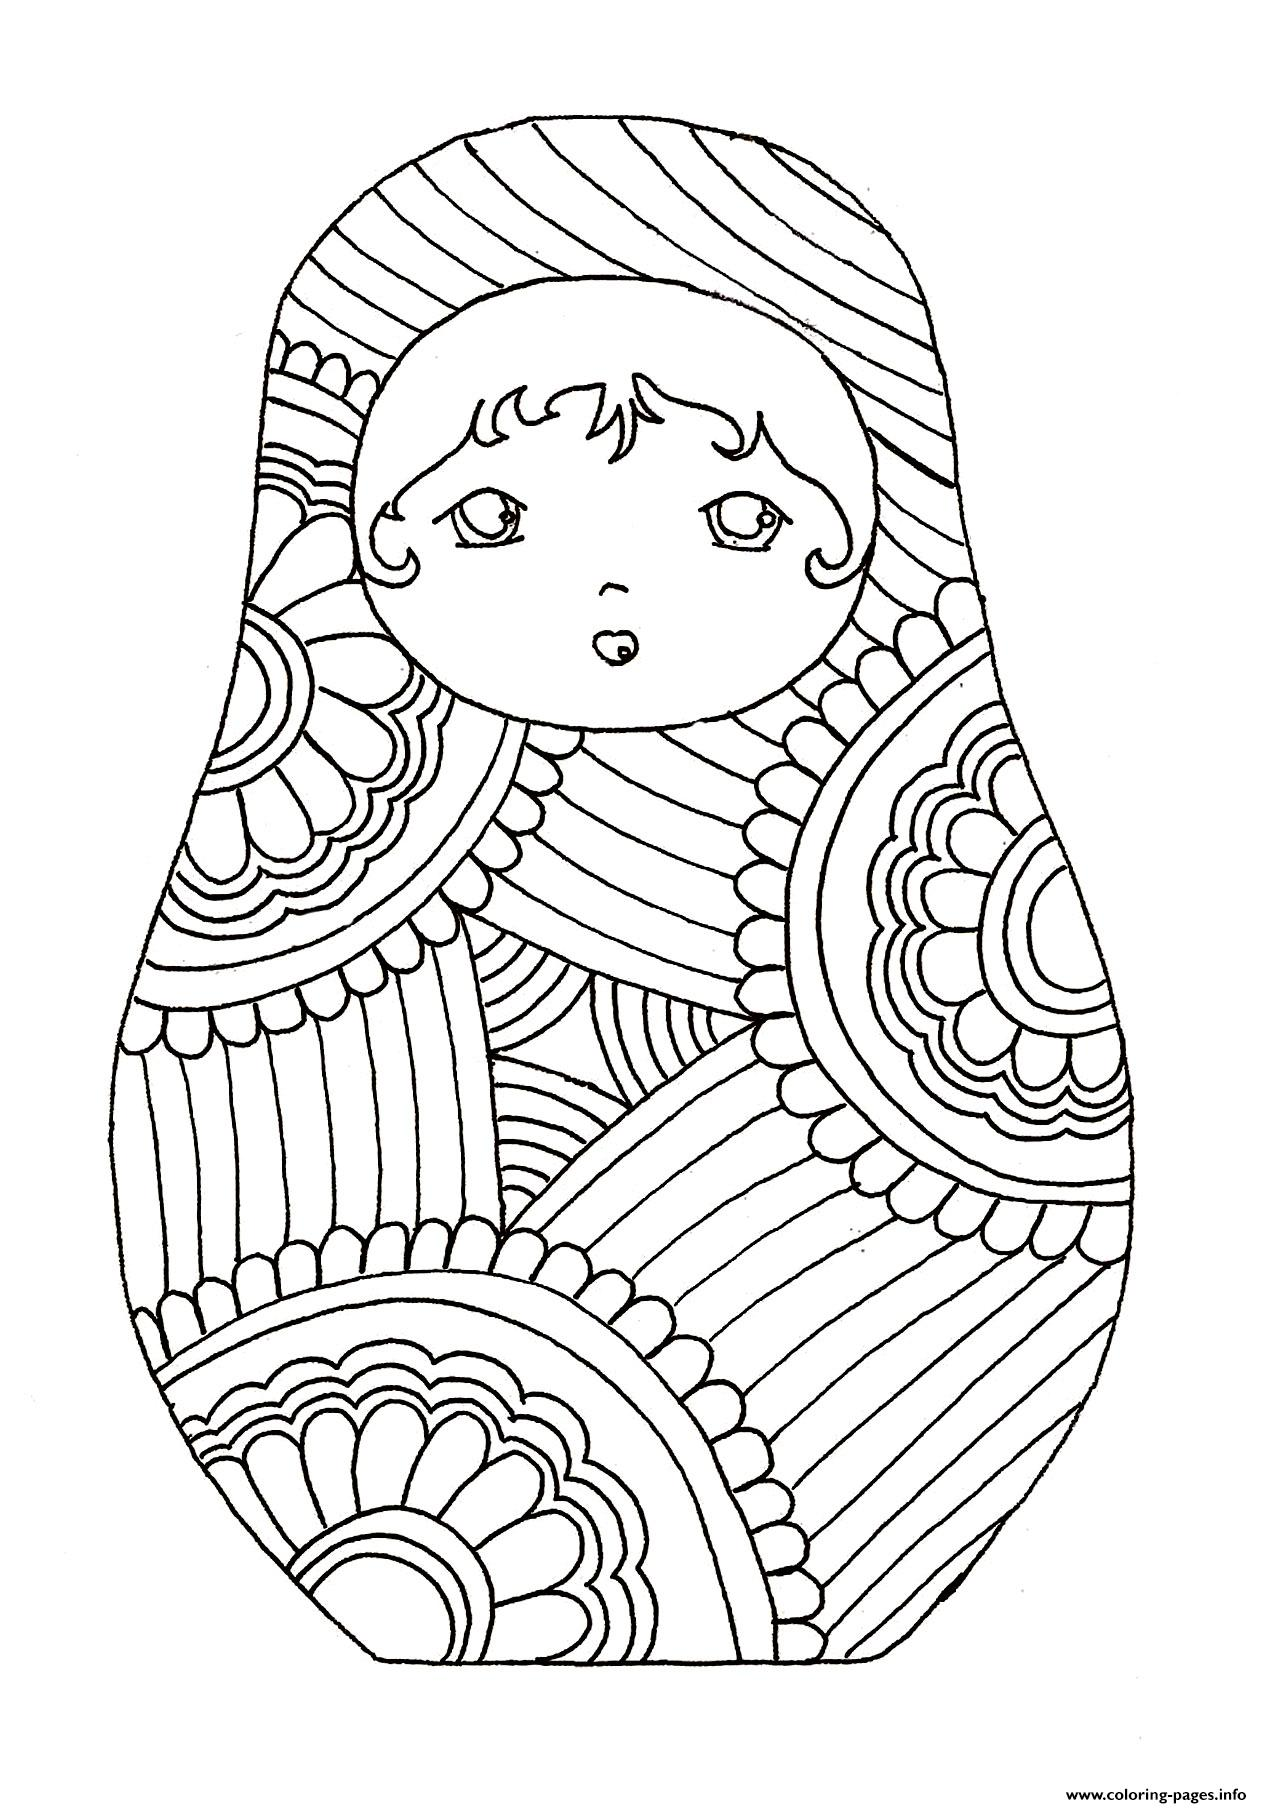 Disney Russian Dolls Coloring Pages